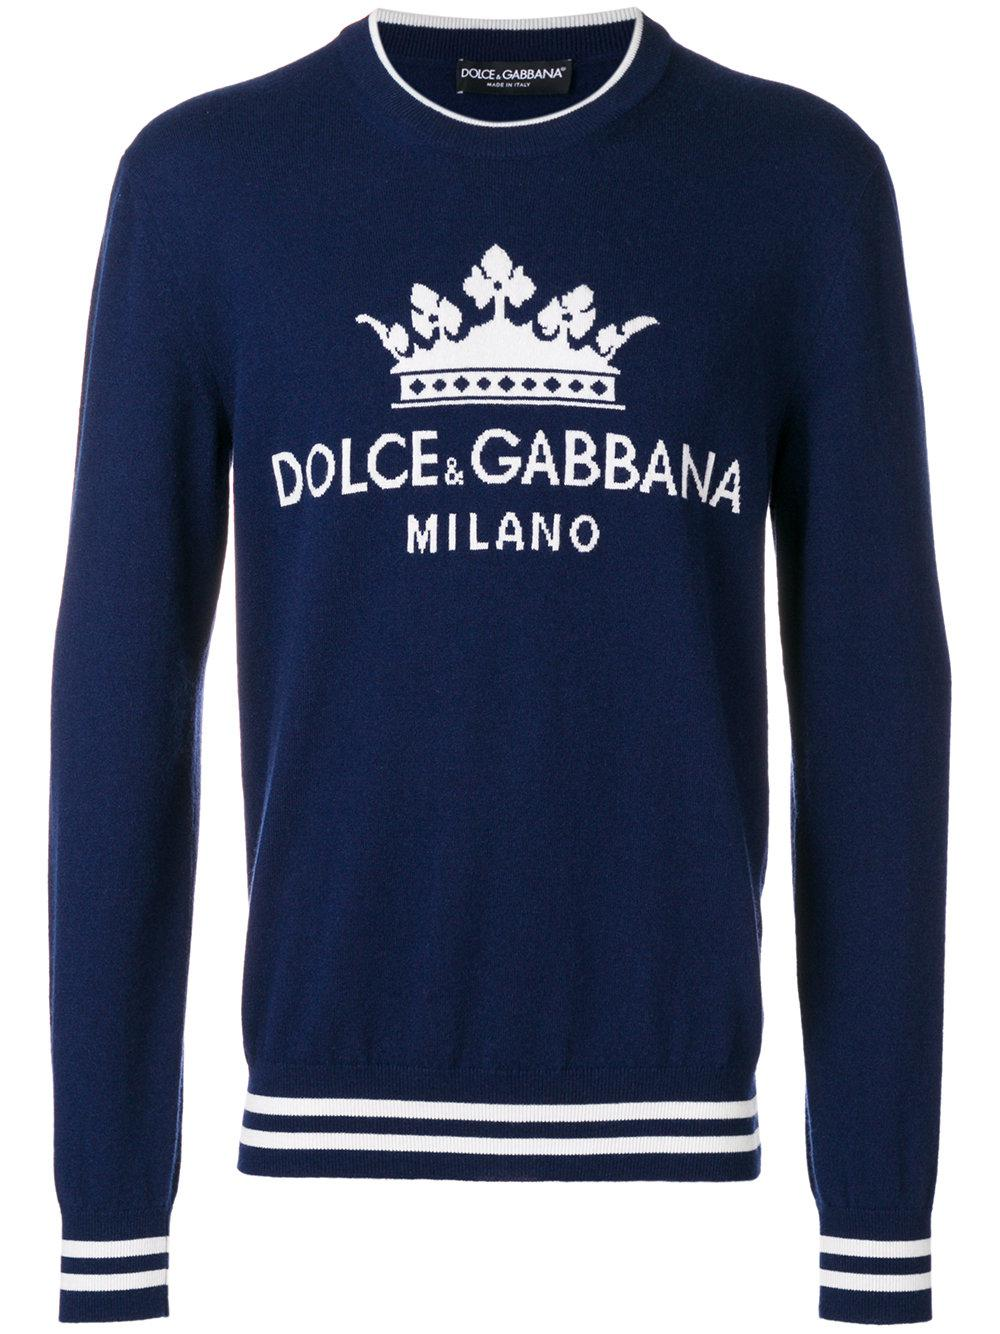 6eb35f3d Dolce & Gabbana Crew Neck Sweater With Logo Print in Blue for Men ...